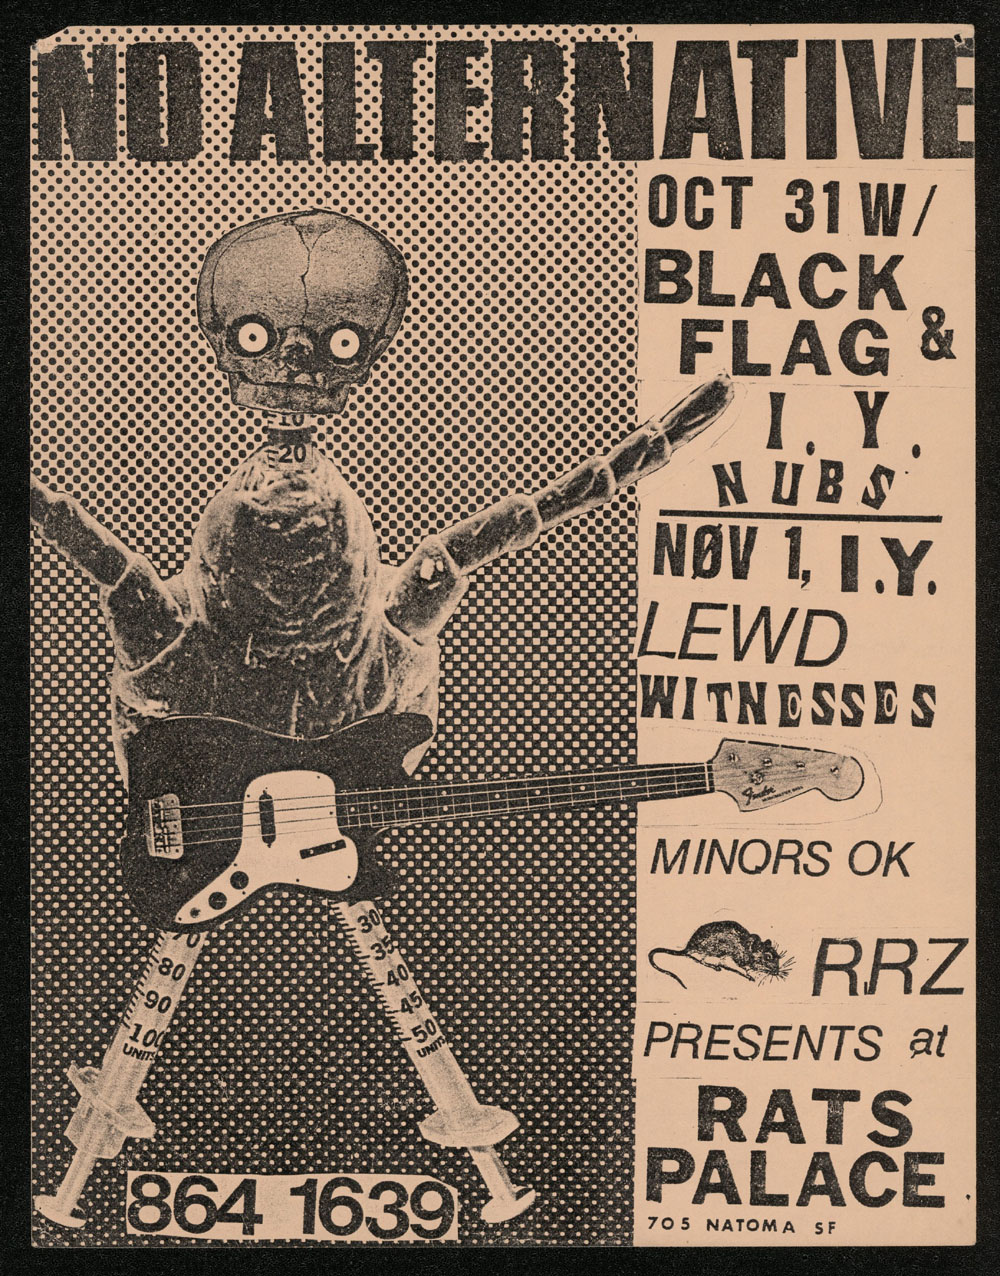 NO ALTERNATIVE w/ Black Flag, Impatient Youth, Nubs, Lewd, Witnesses at Rats Palace